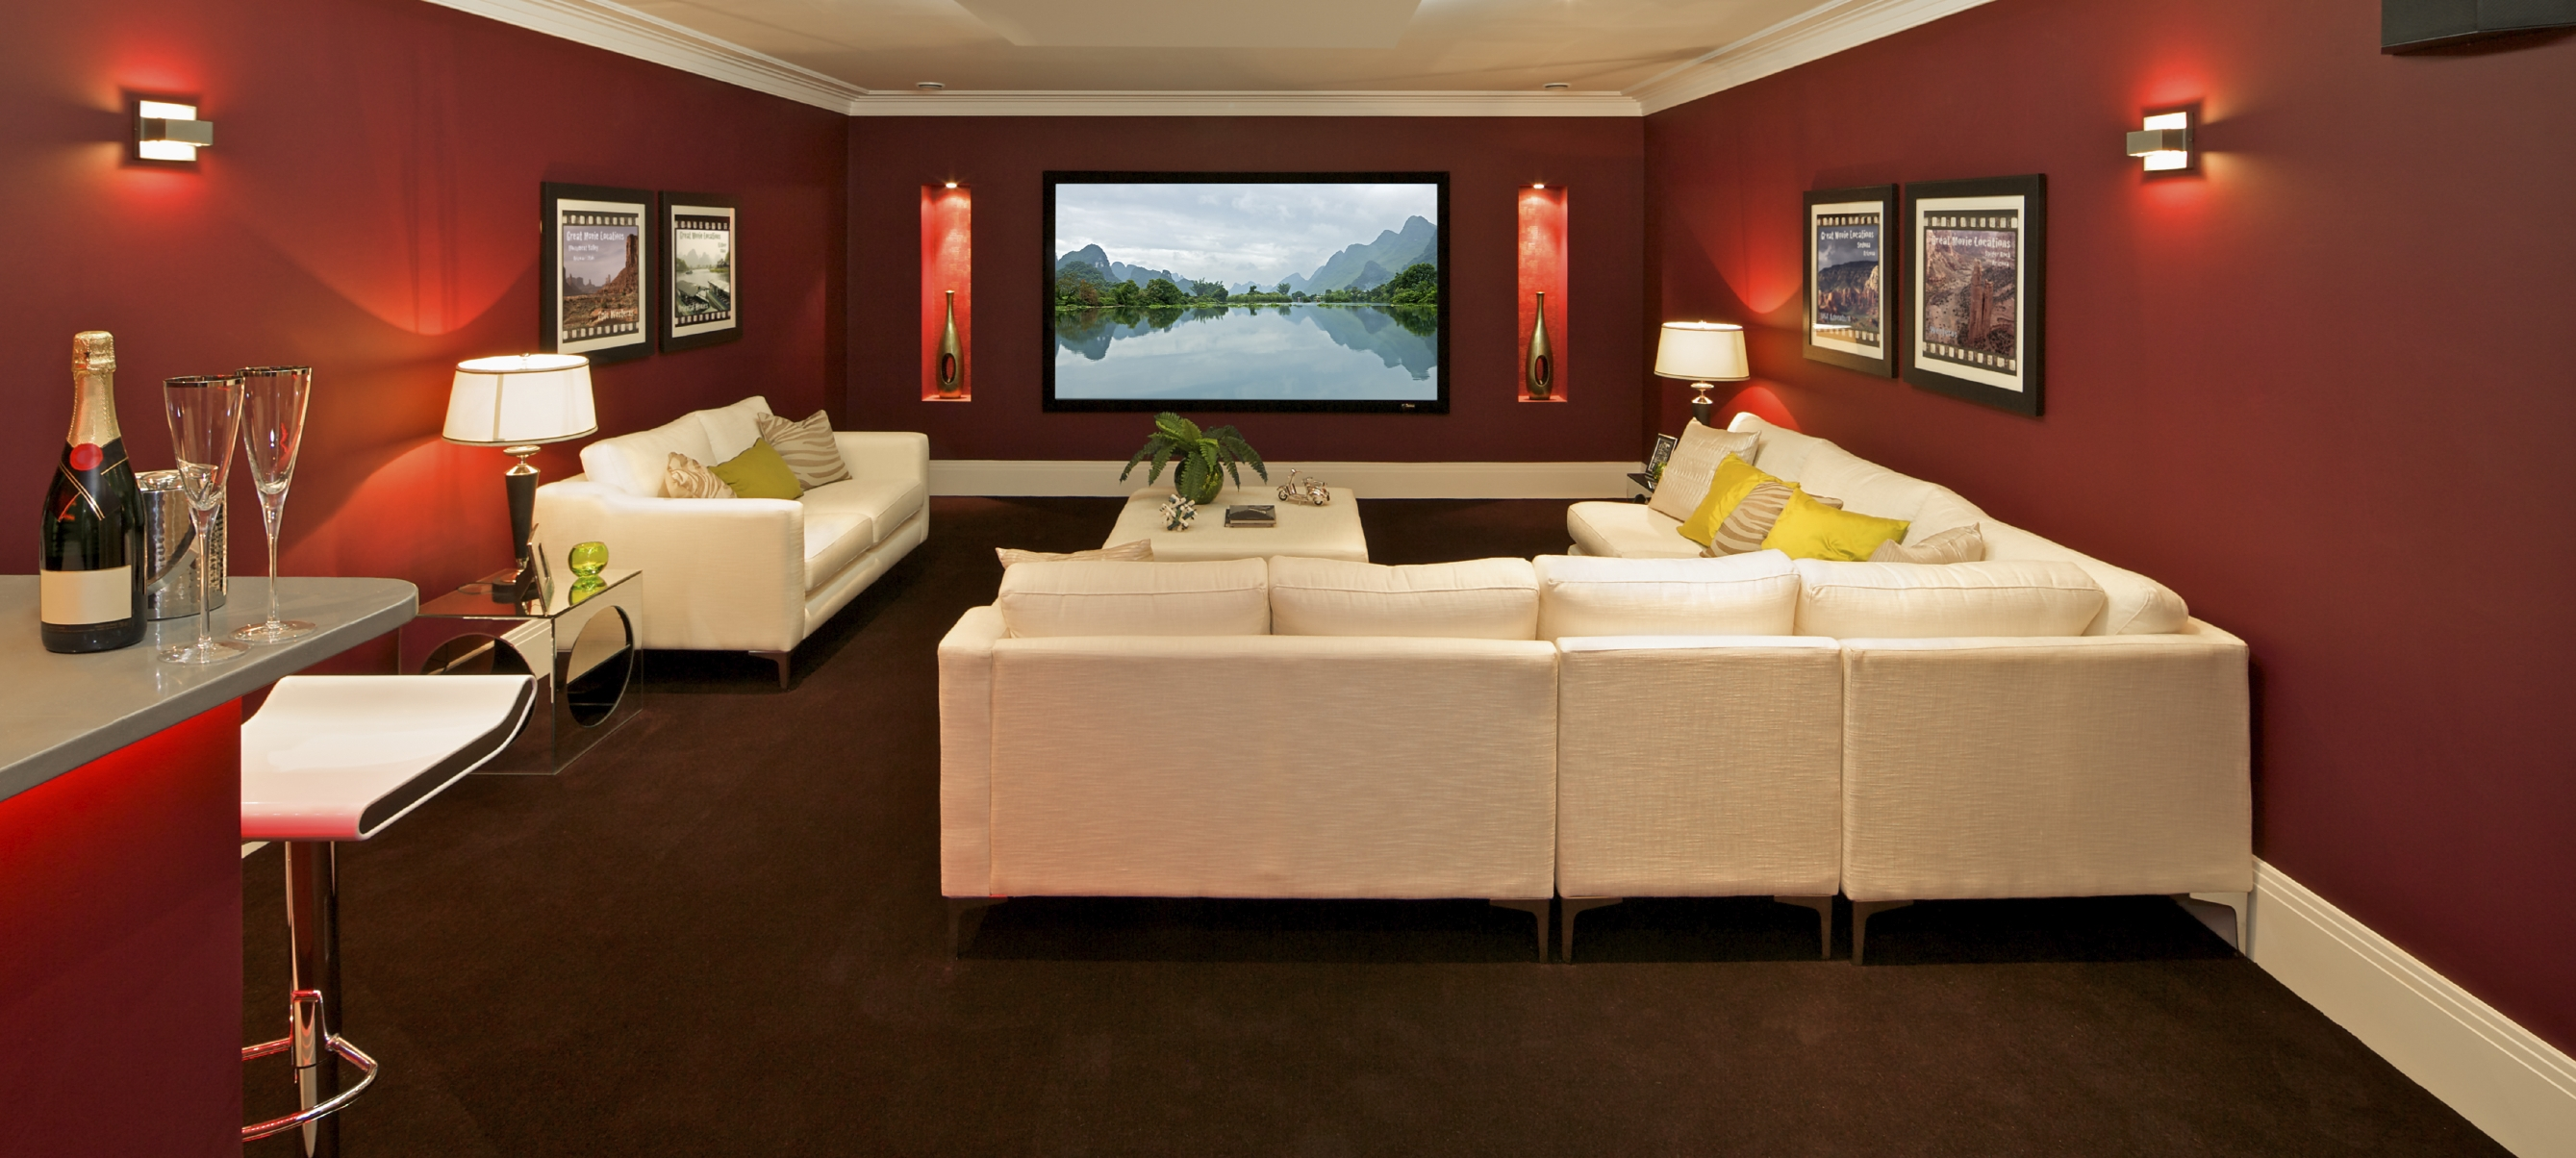 Basement home theater design ideas for your modern home Theater rooms design ideas